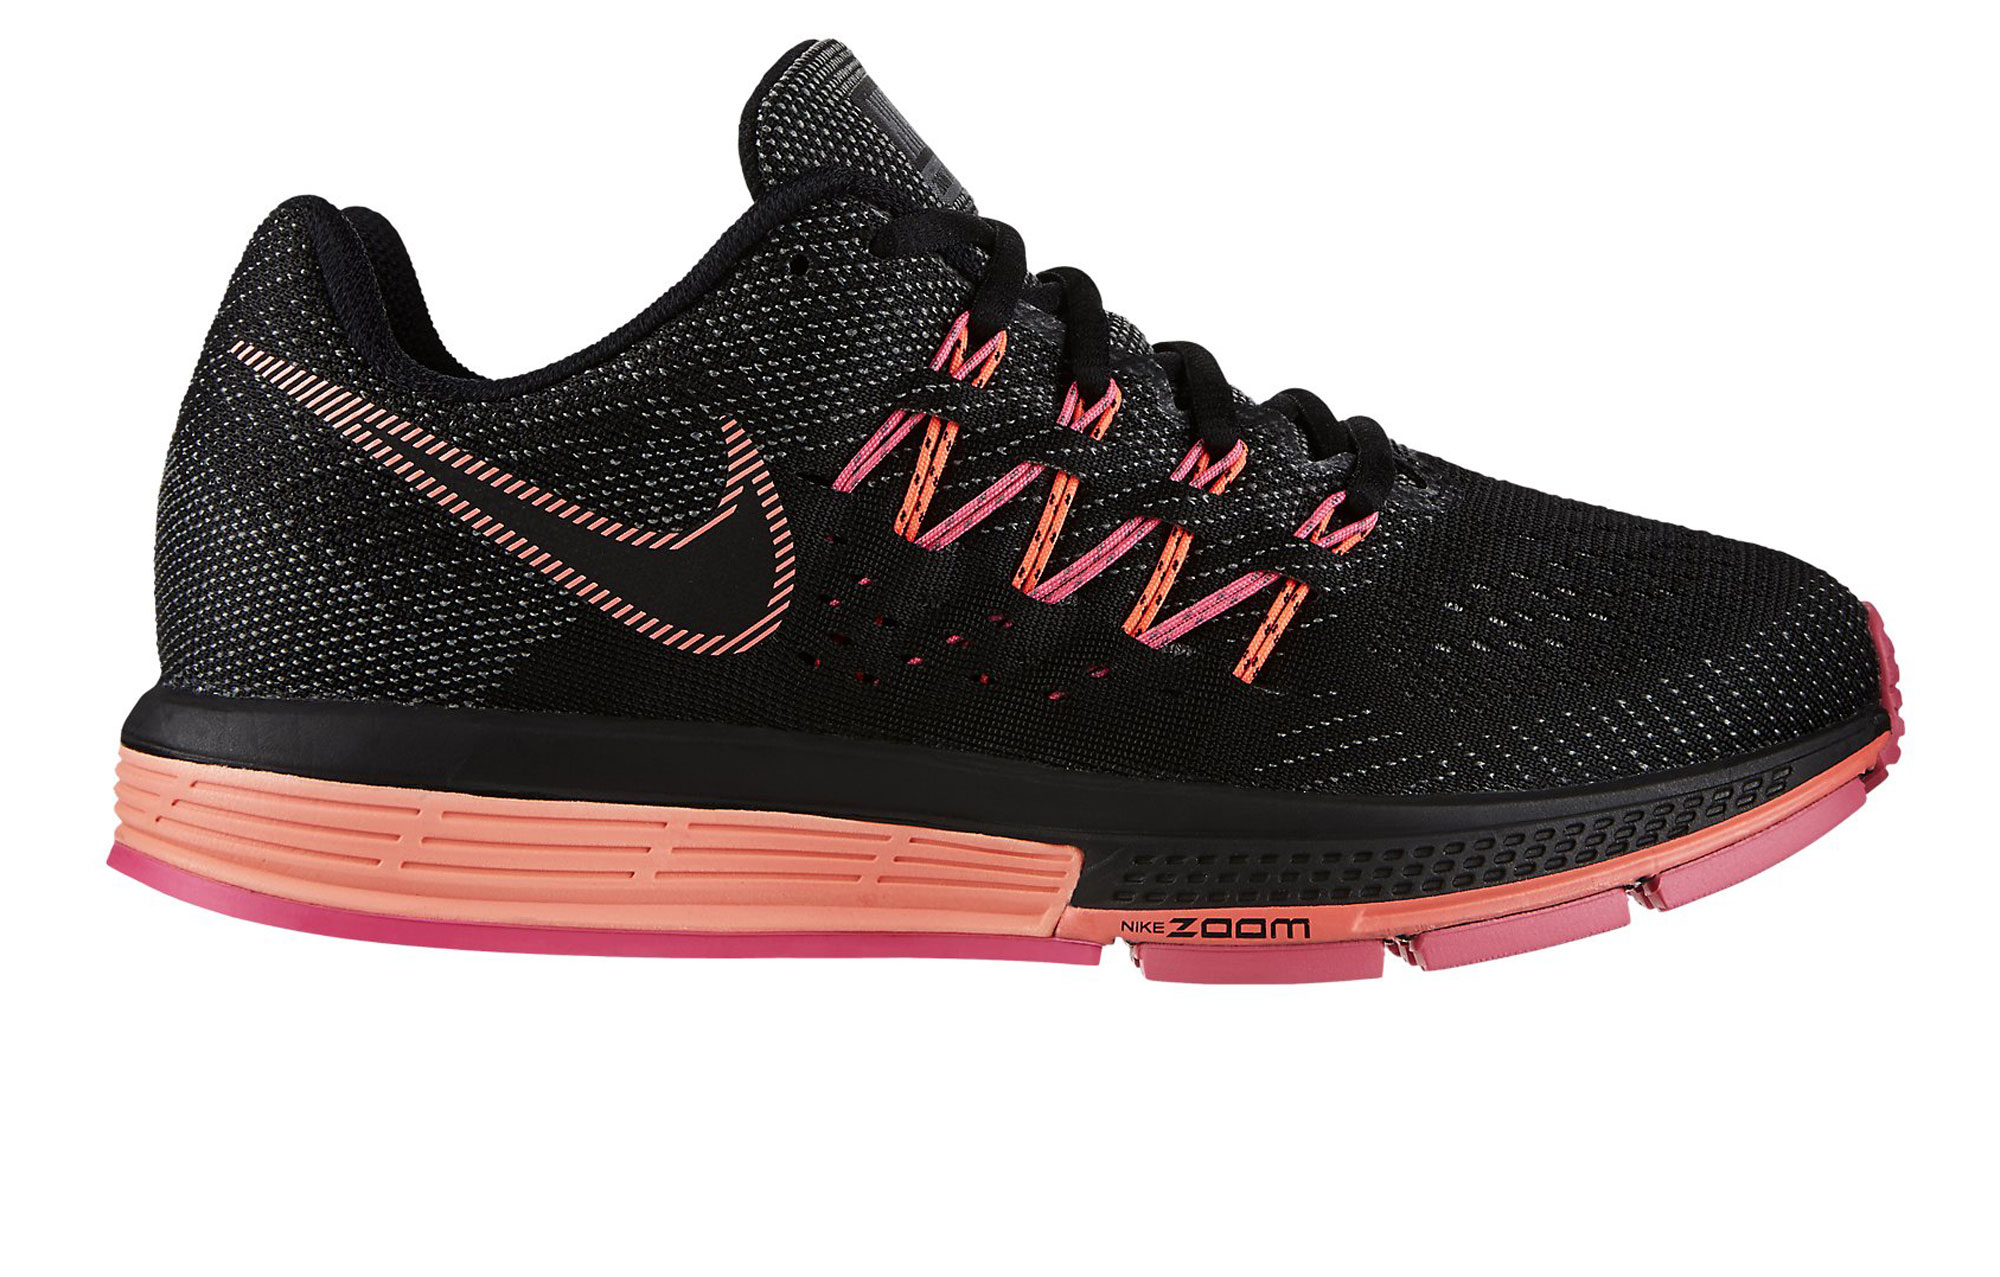 Nike Air Zoom Vomero 10 Hommes Chaussures Pas Cher Vivid